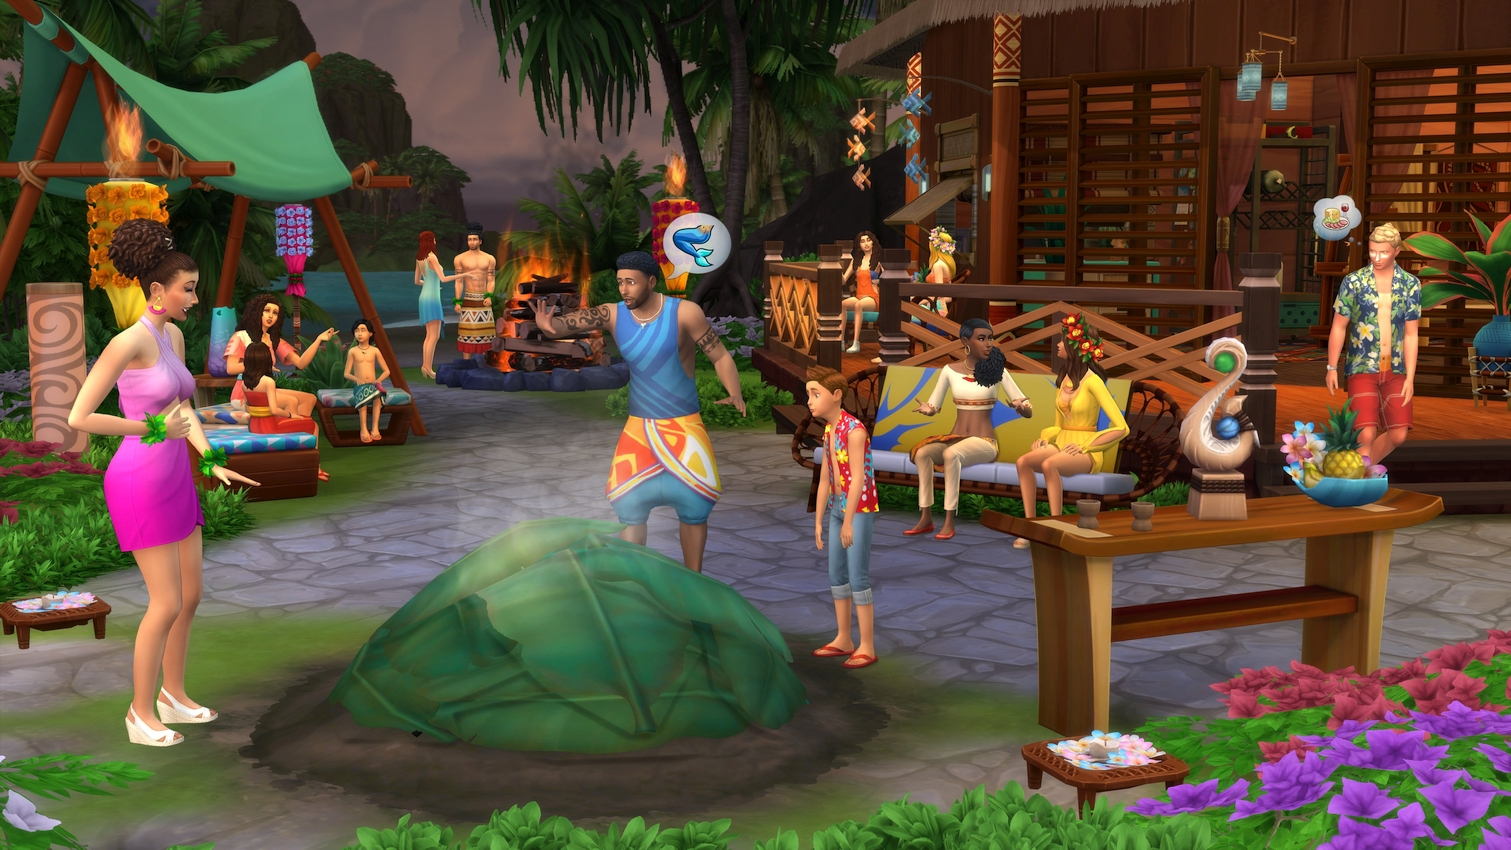 The Sims 4 Major December Update Is Now Live With New Create-A-Sim Content